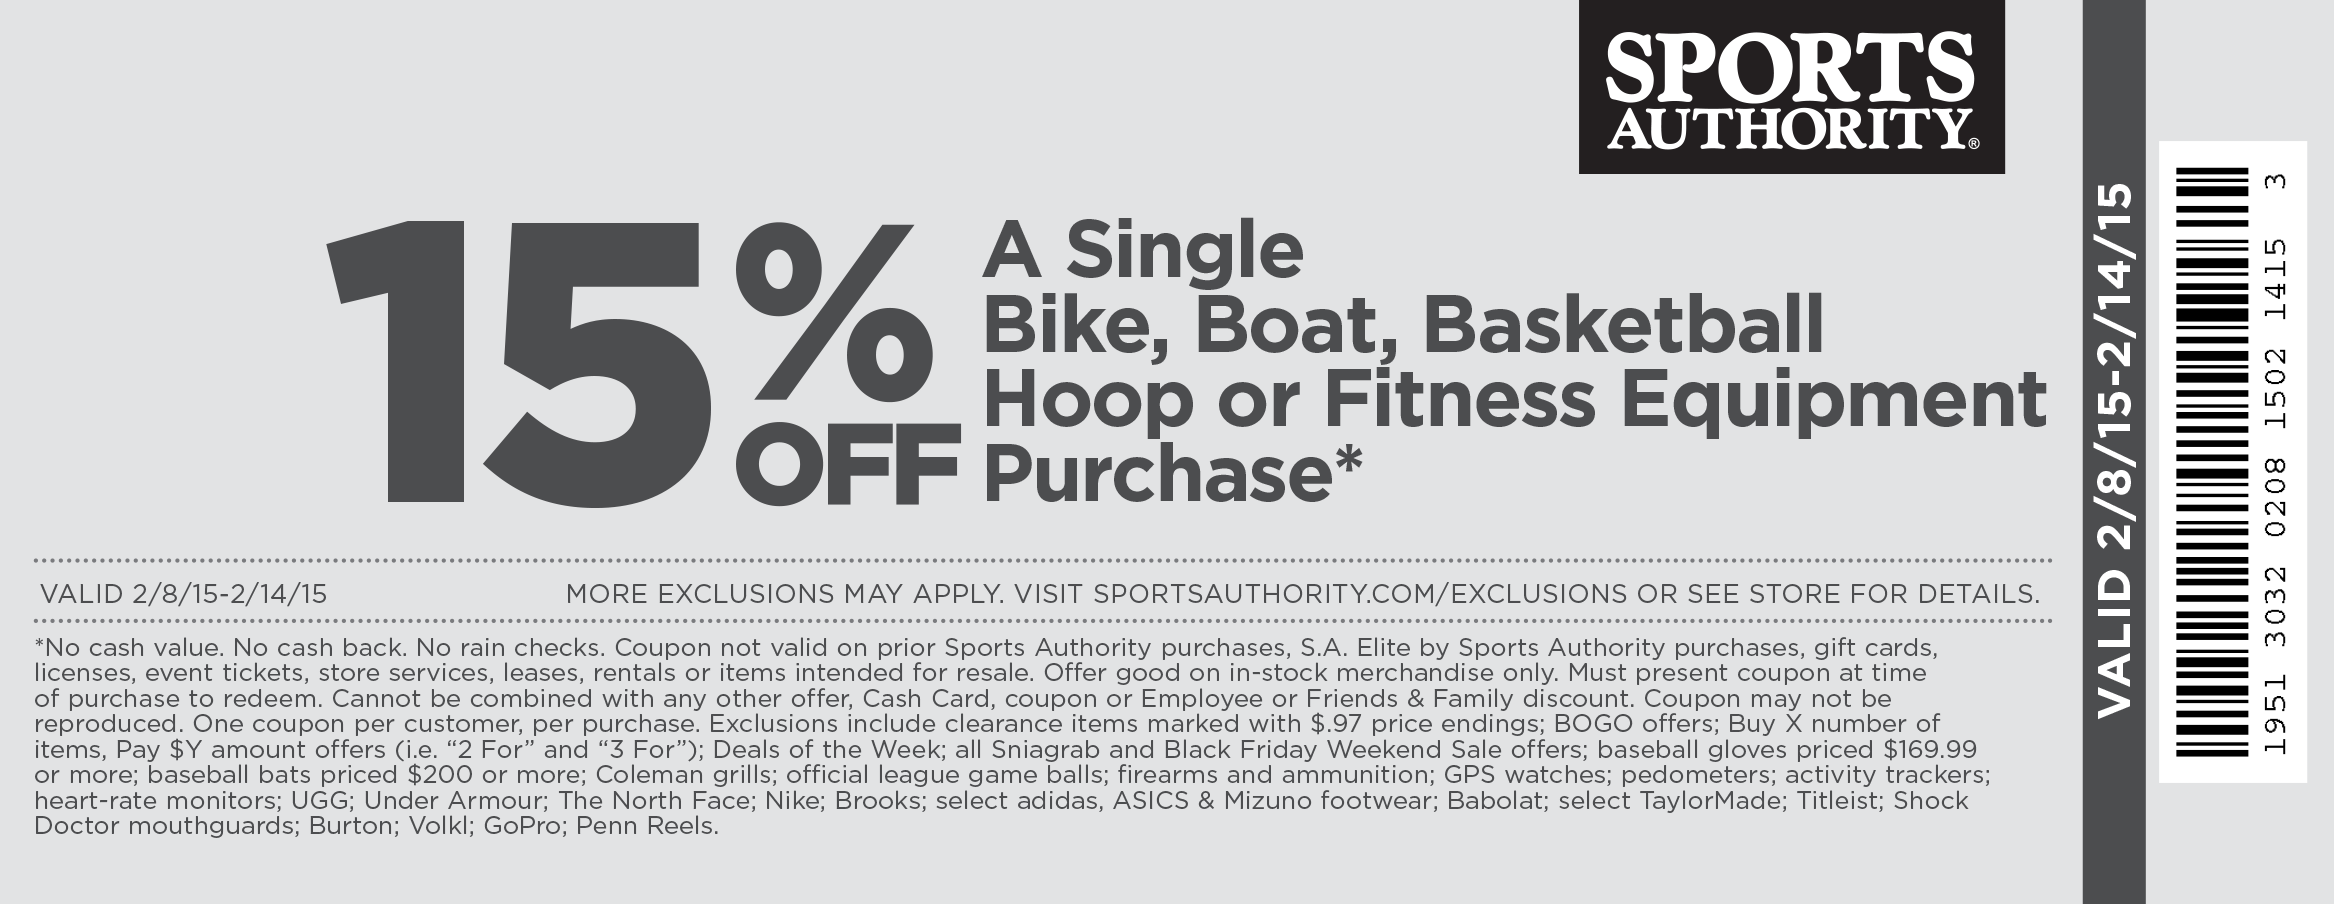 Sports Authority Coupon March 2017 15% off bikes, boats & basketball at Sports Authority, ditto online